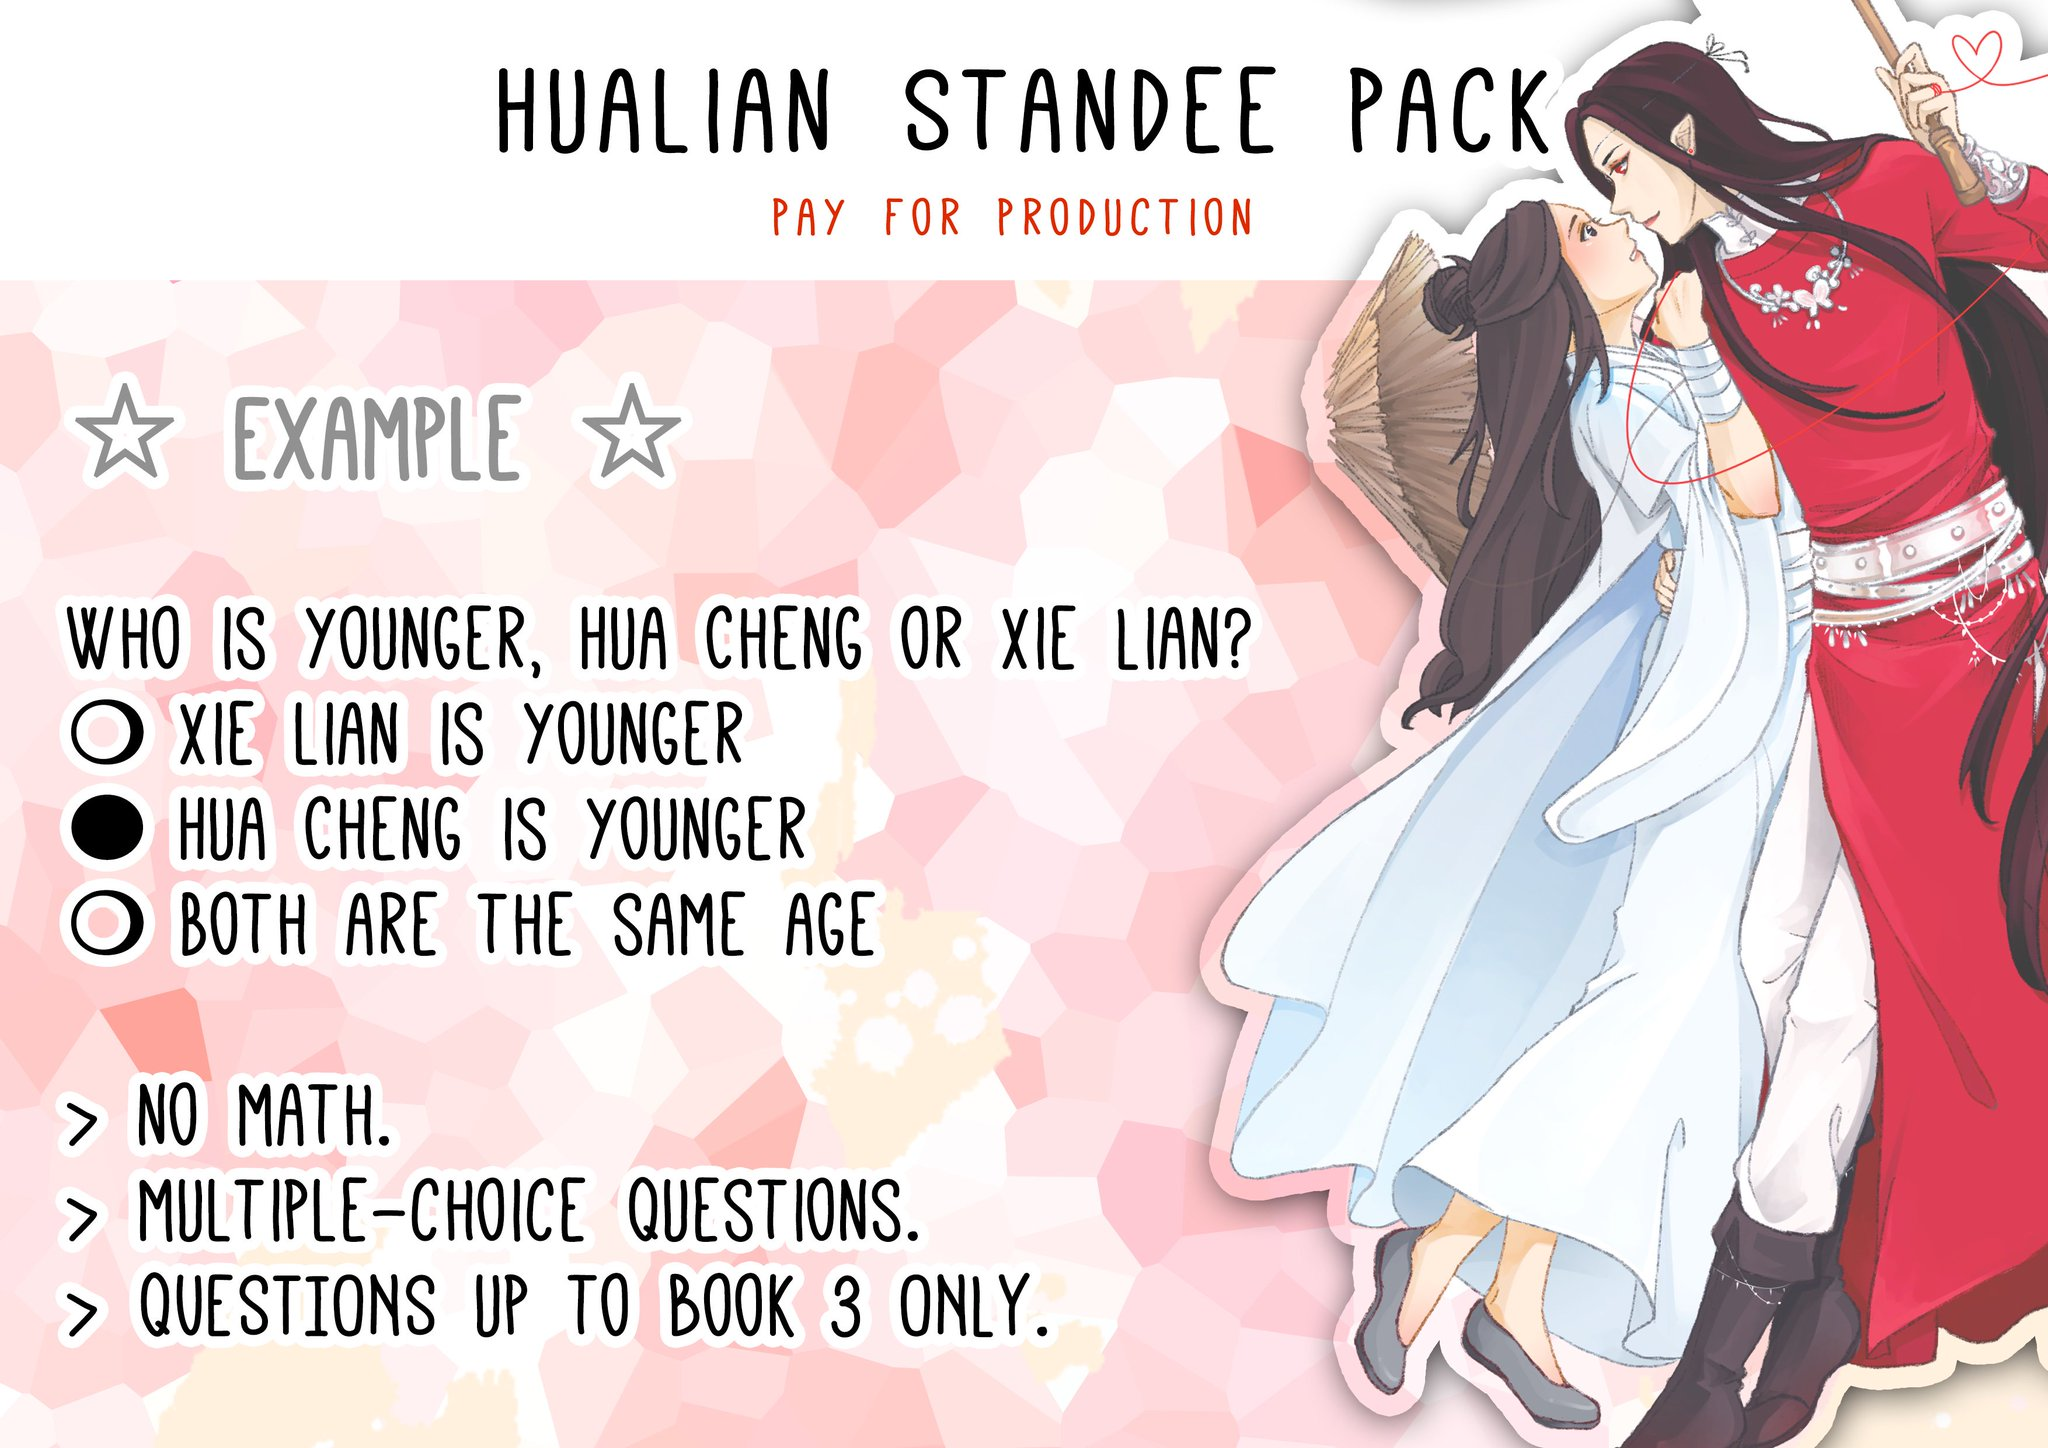 Goldfish Meg On Twitter Hualian Standee Pack 1 Sept 10am And 2pm Gmt 8 Cost Shipping List Here Https T Co Rkp4bpeeng Each Hualian Pack Will Include 1 Hualian Standee 2 Insta Cards